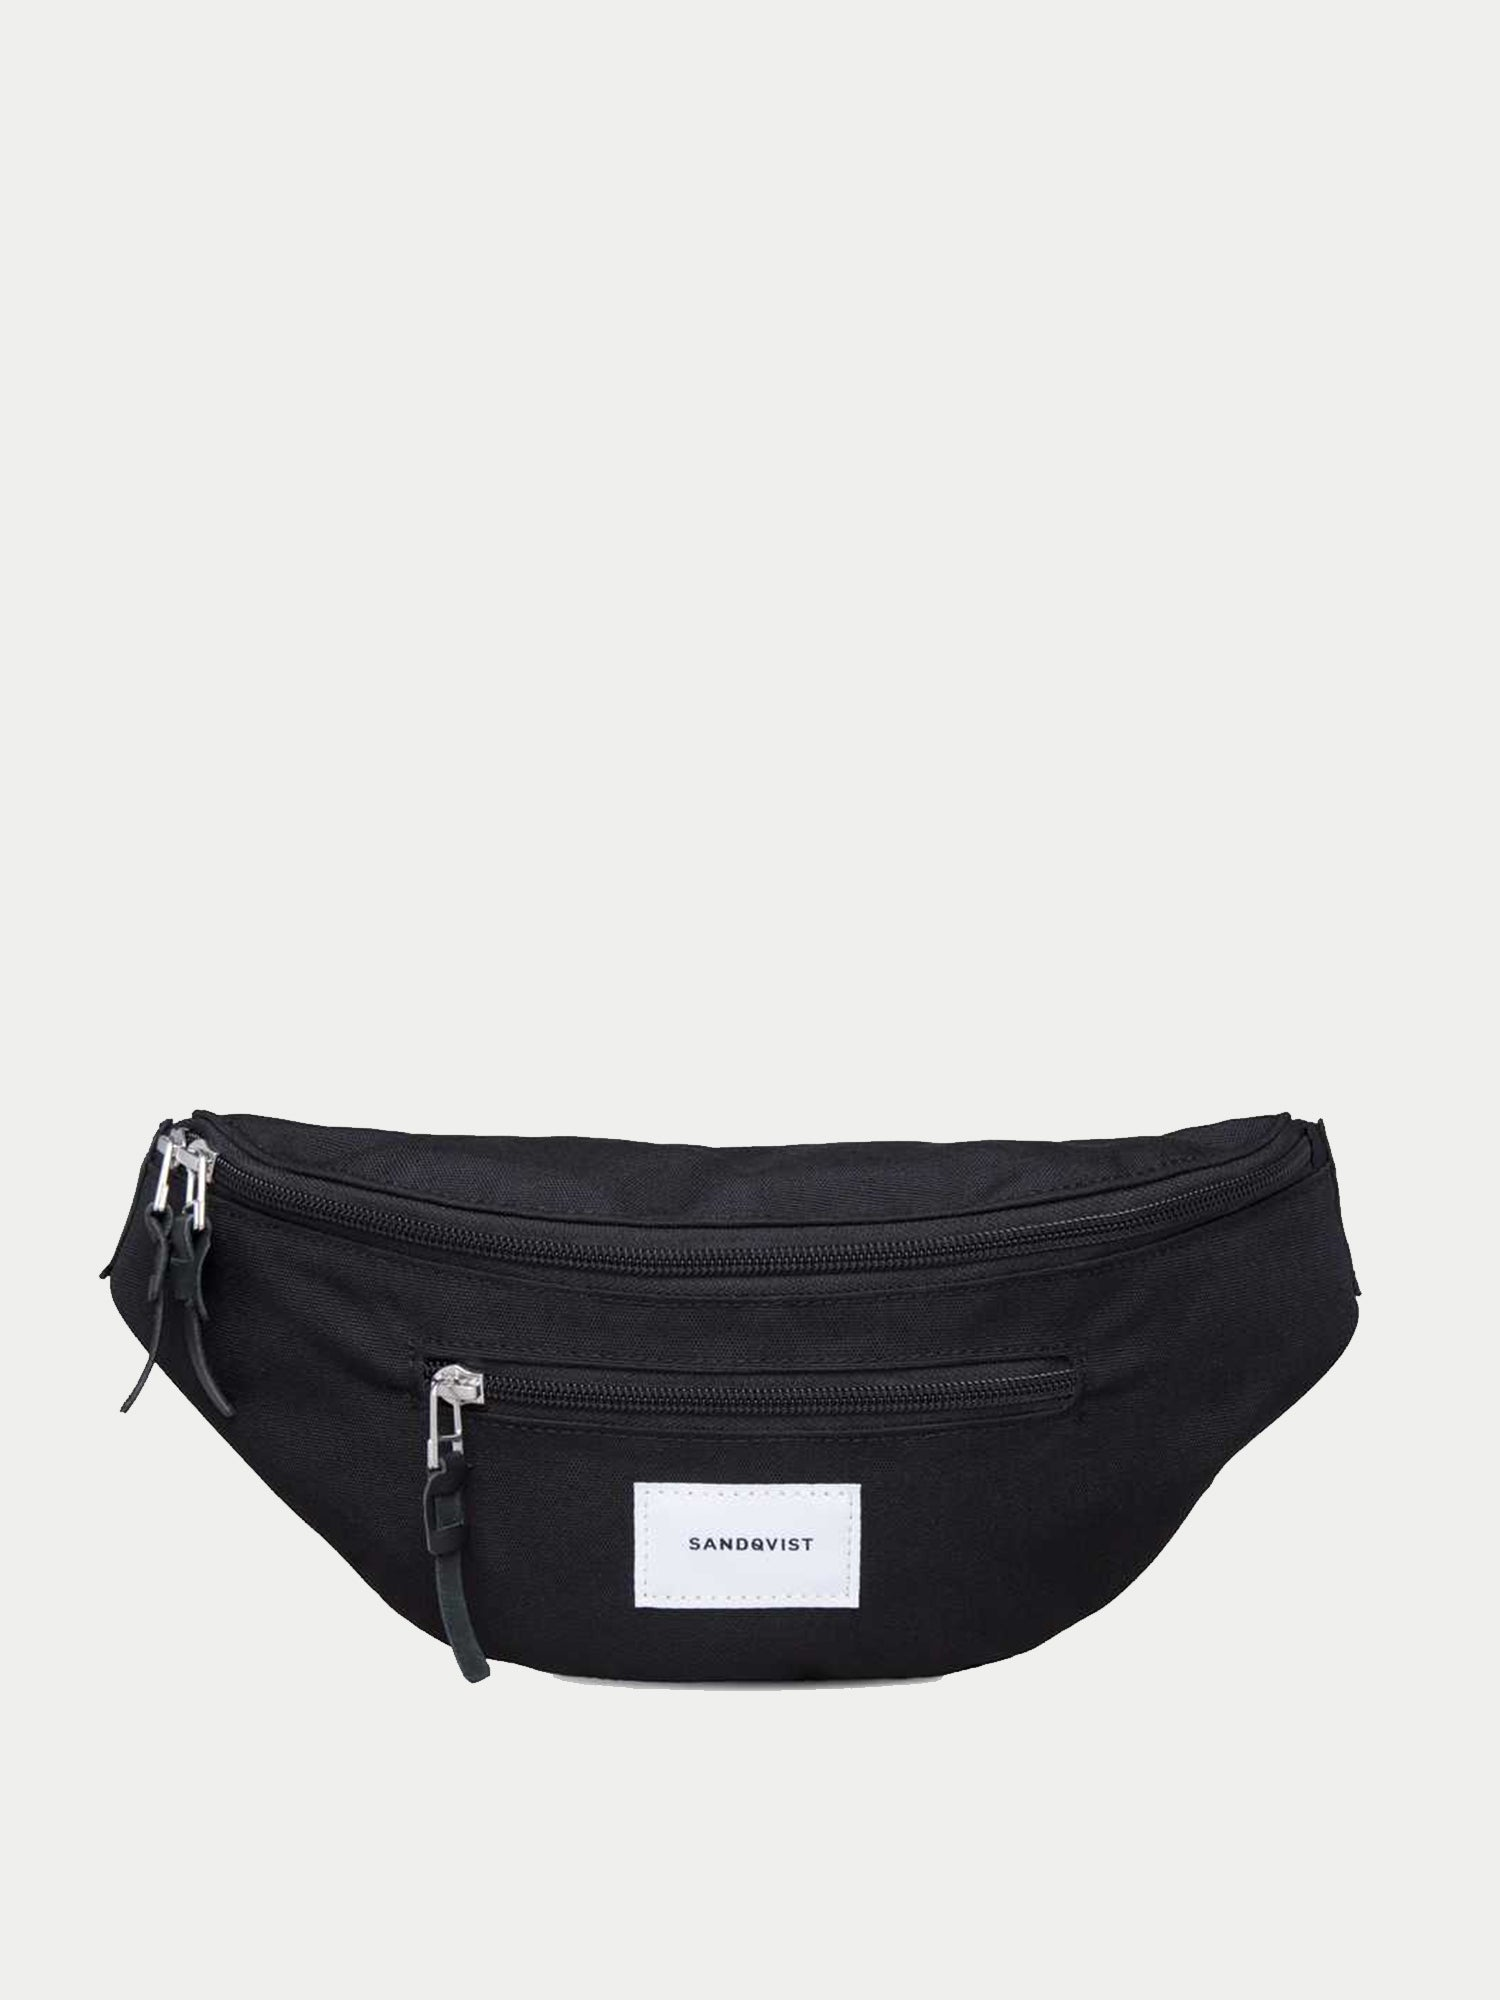 Sandqvist Aste Bum Bag (Black)